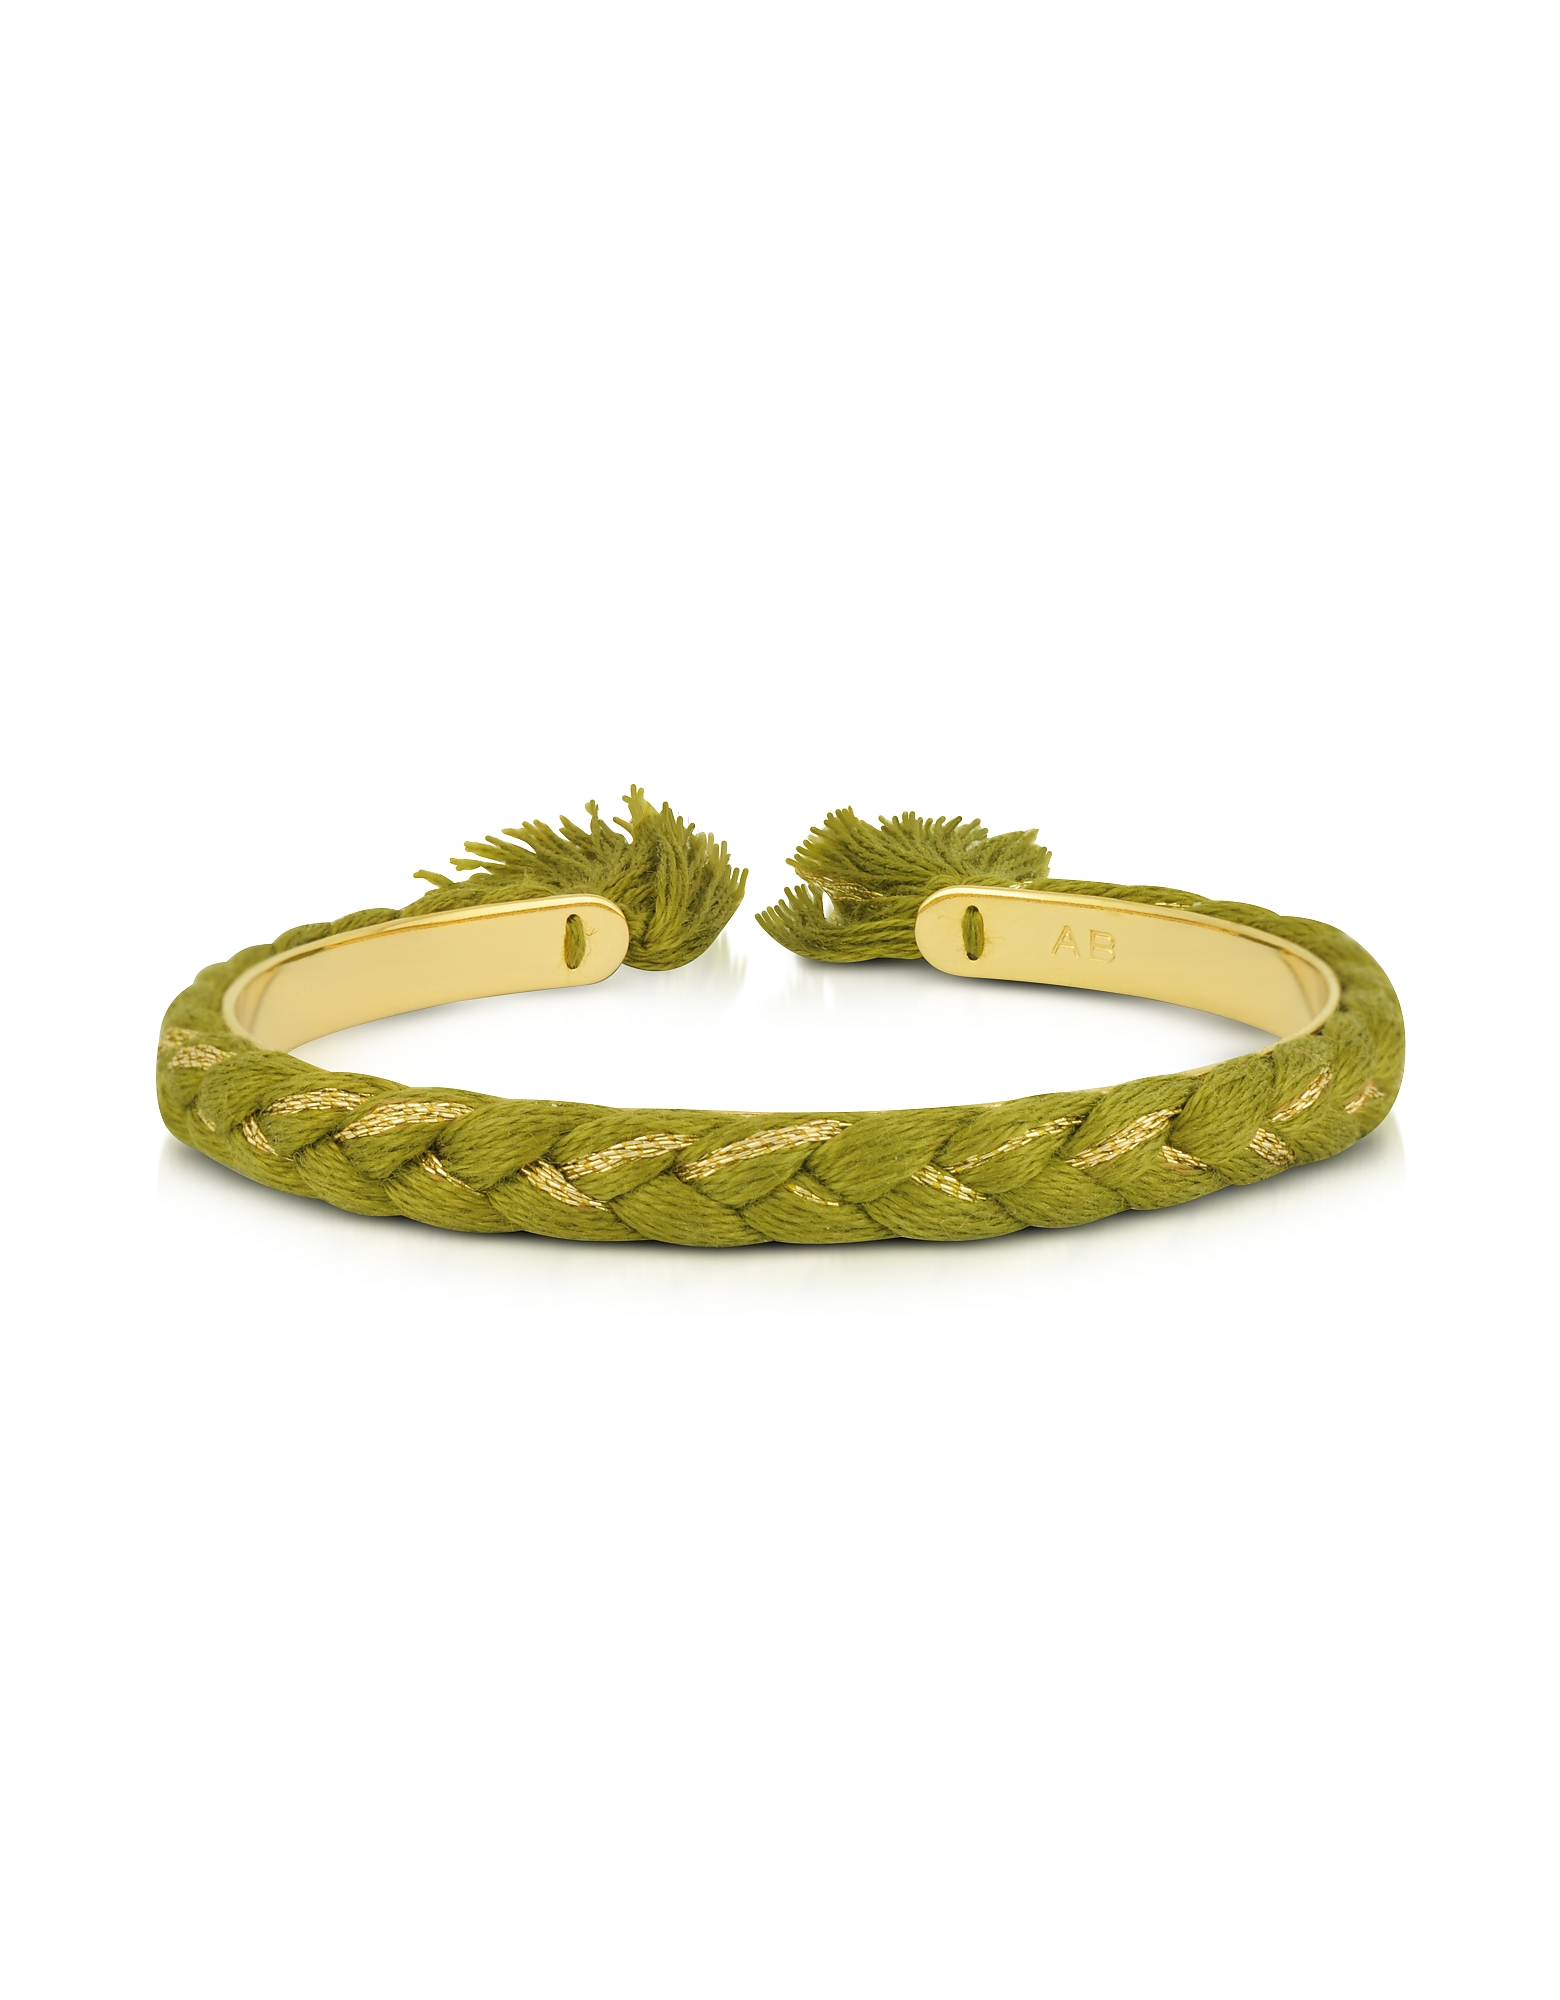 Image of Aurelie Bidermann Designer Bracelets, Copacabana Gold and Cotton Thin Bangle